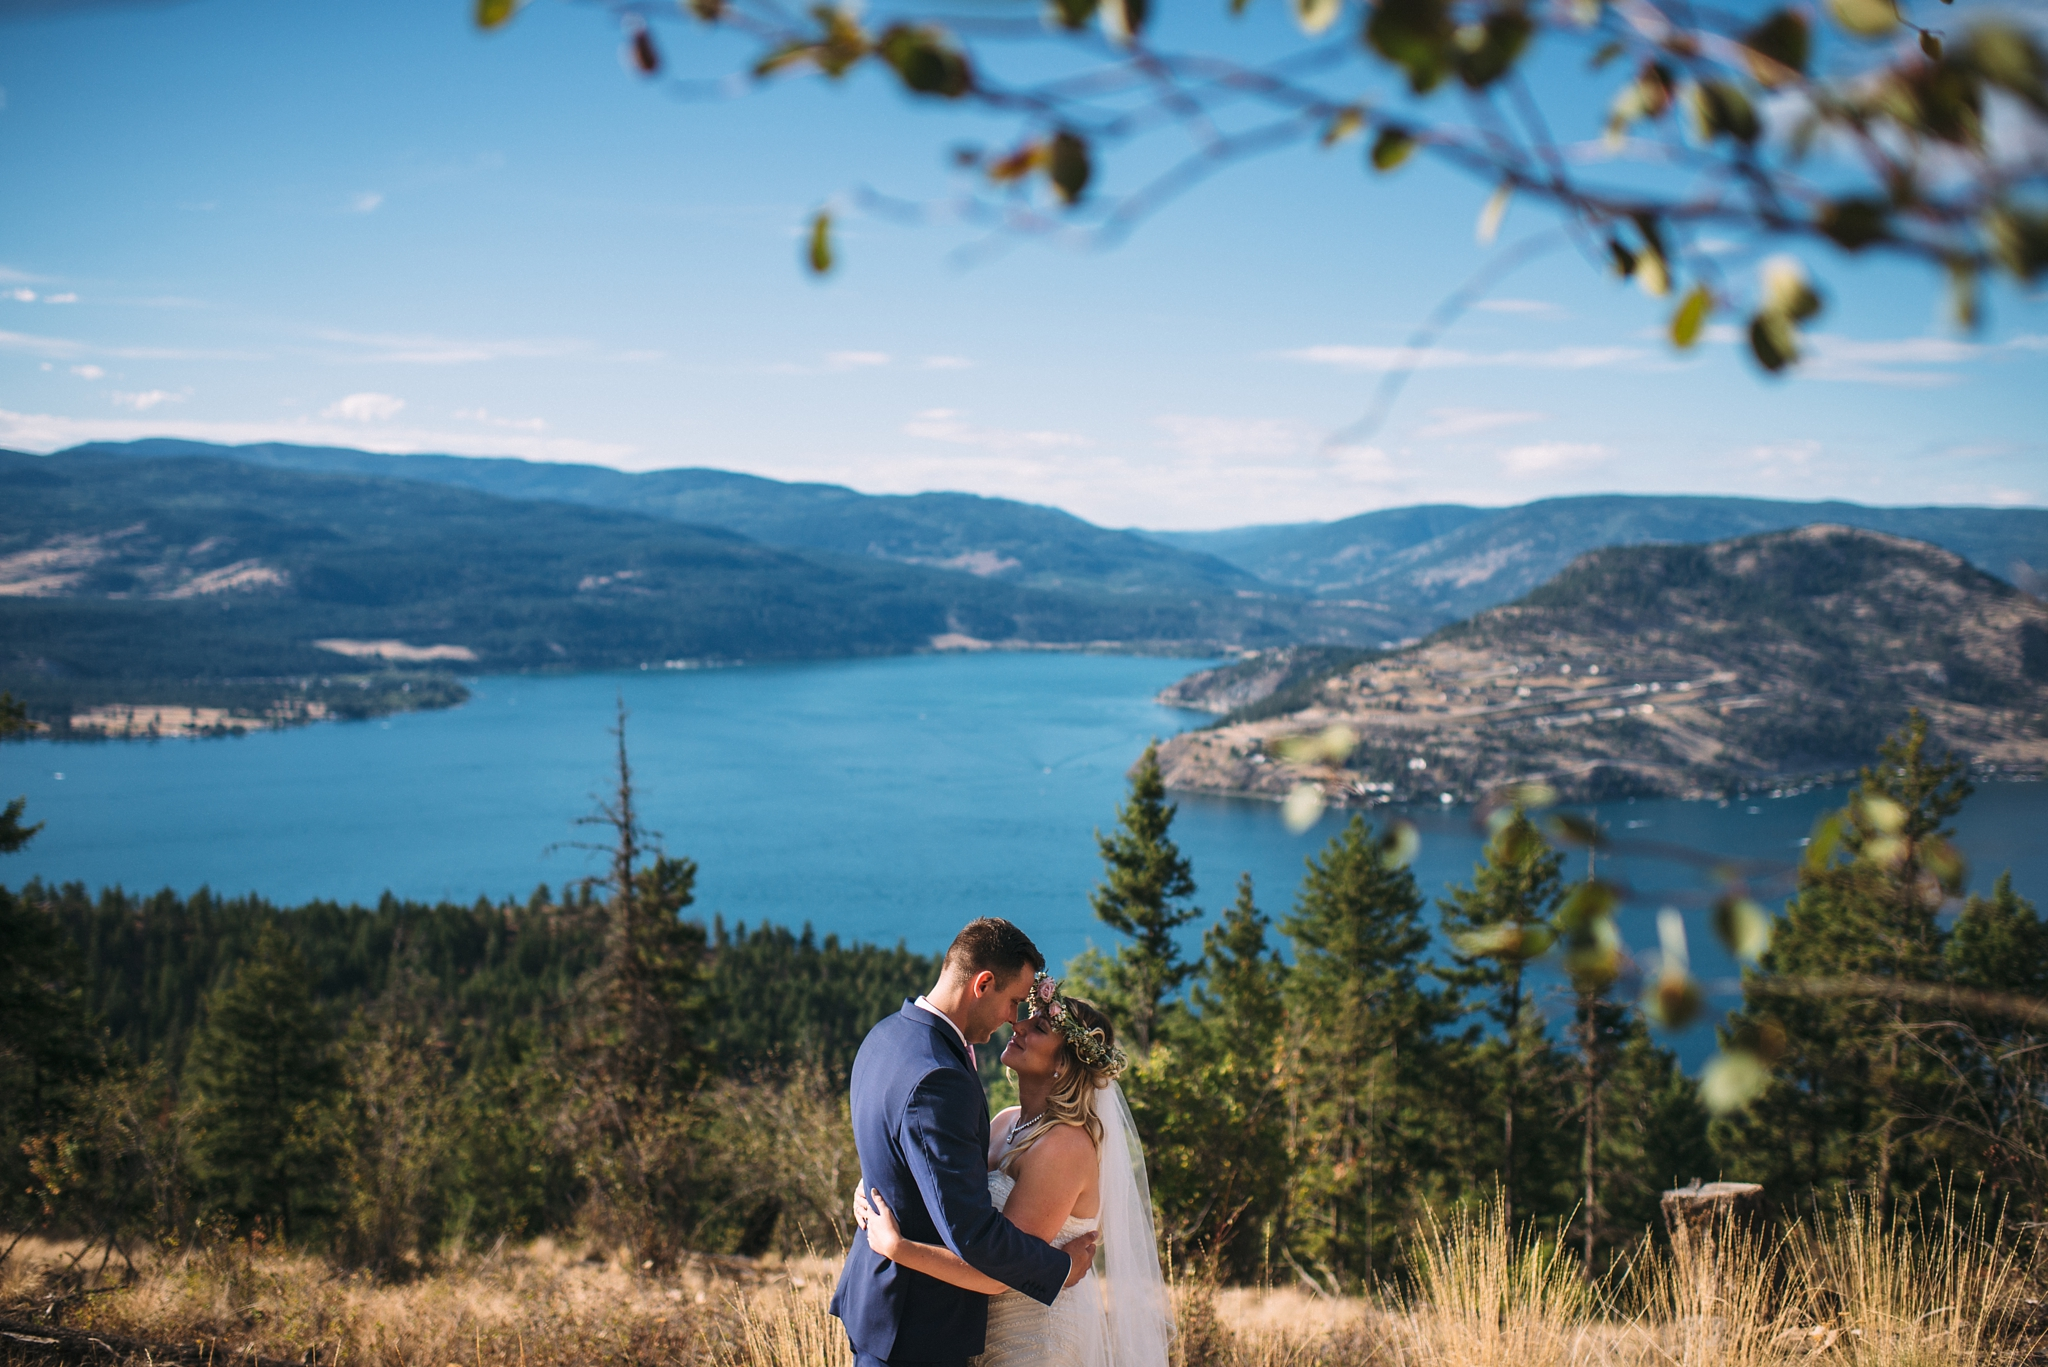 kaihla_tonai_intimate_wedding_elopement_photographer_2646